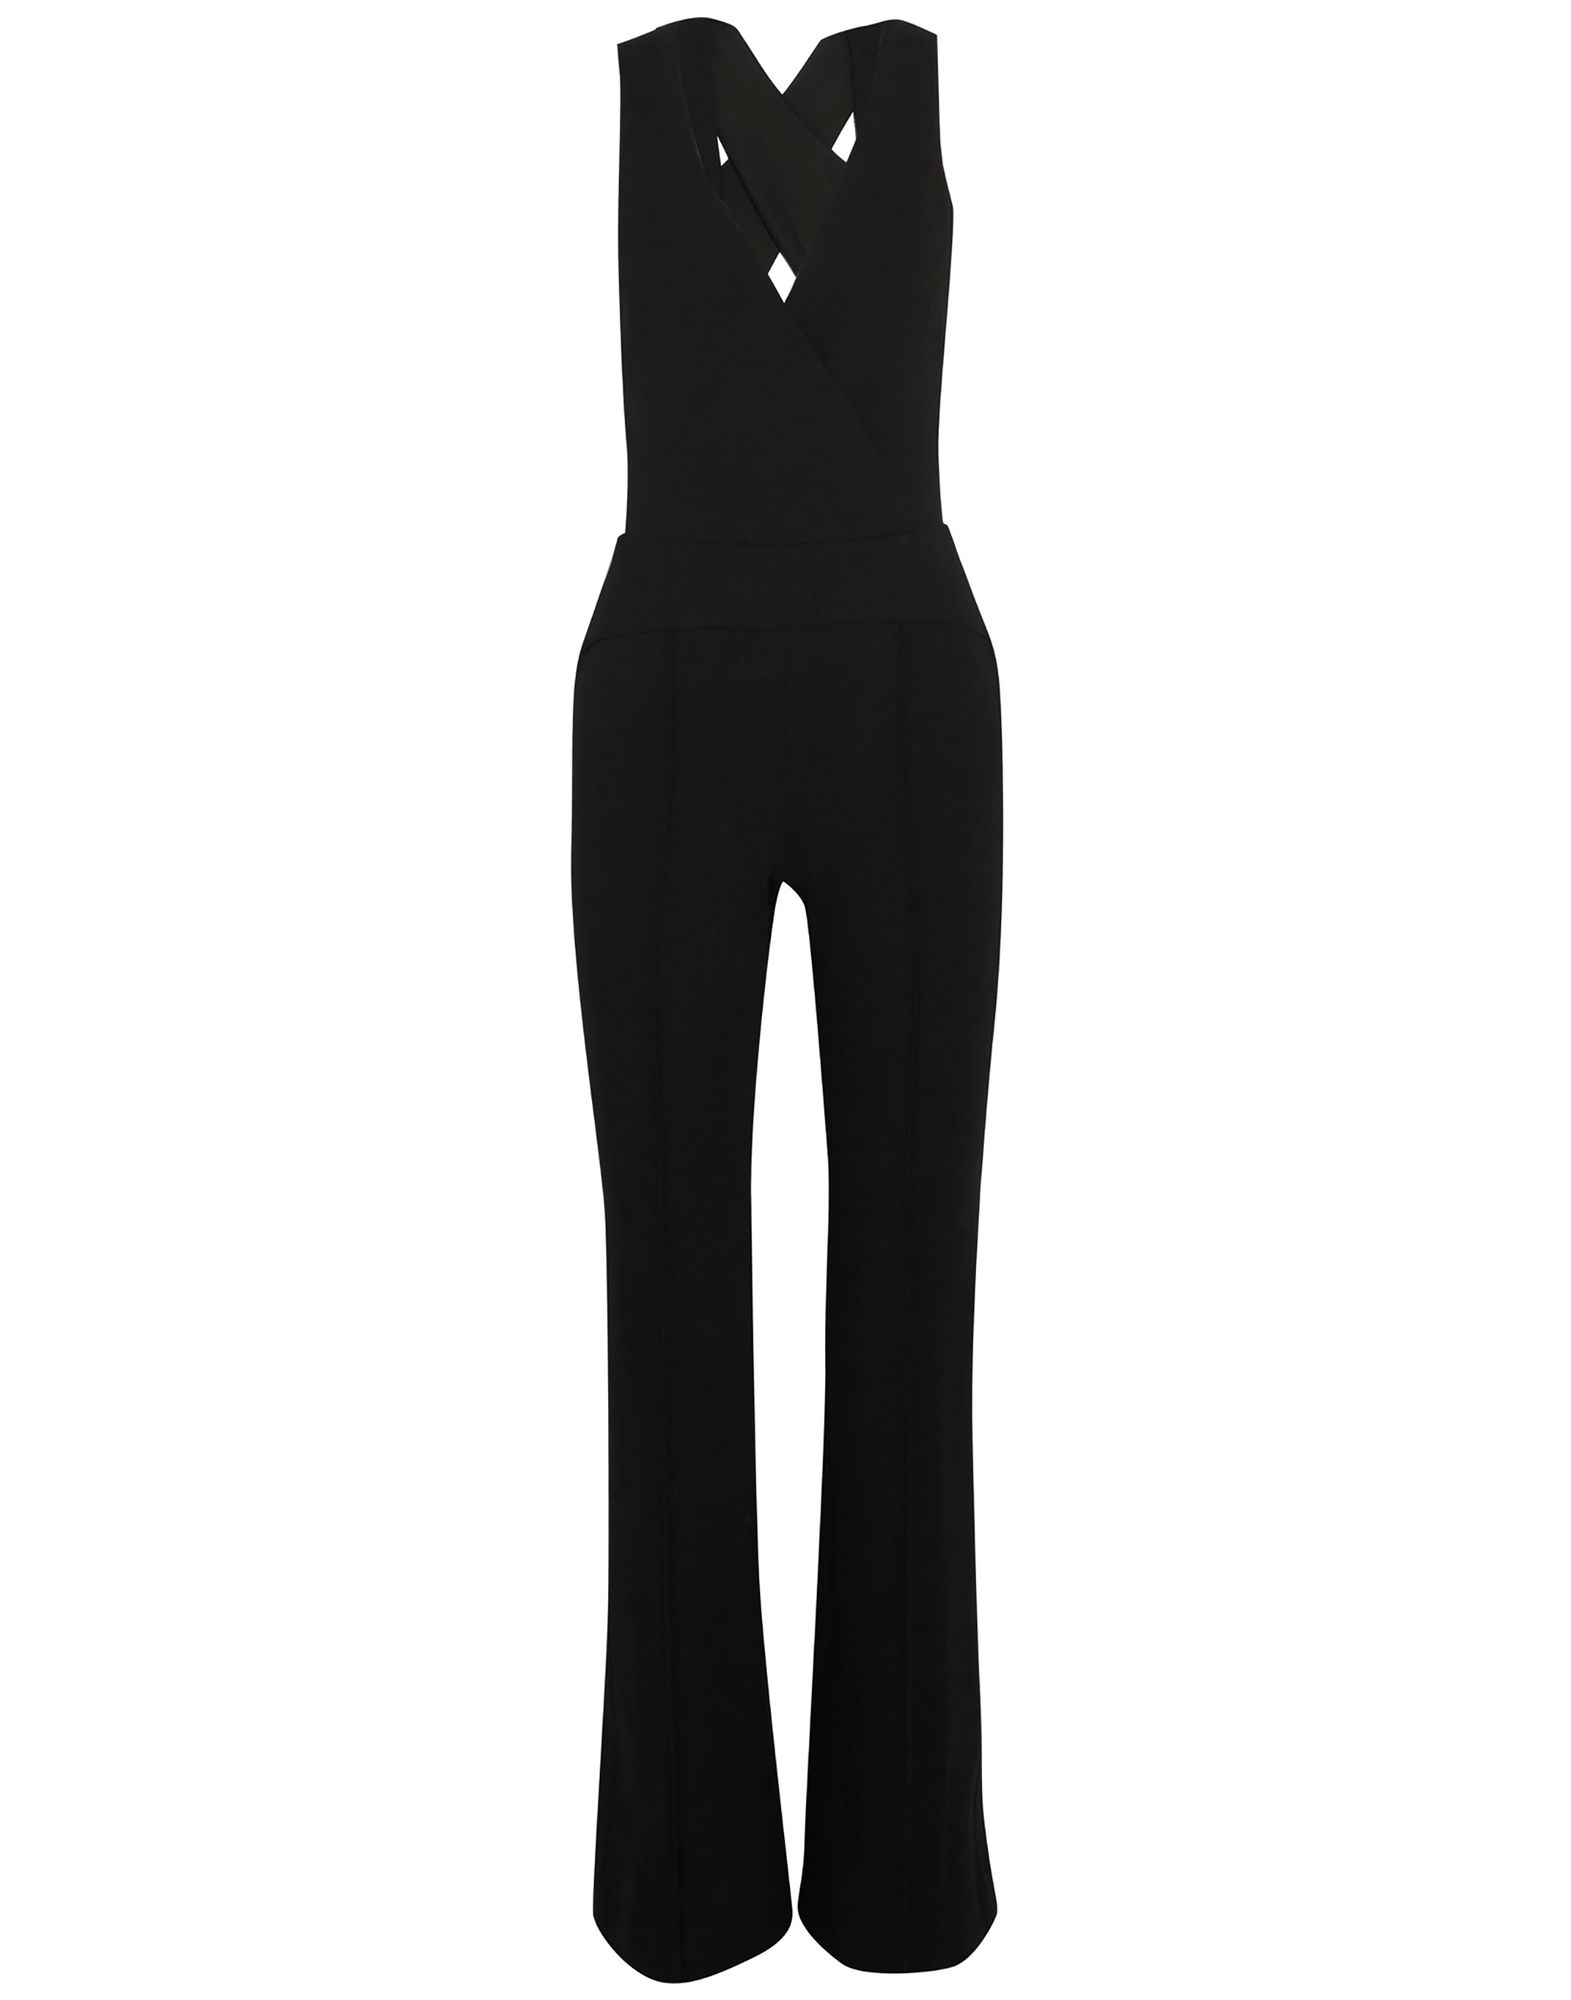 L'AGENCE | L'AGENCE Jumpsuits 54162319 | Goxip